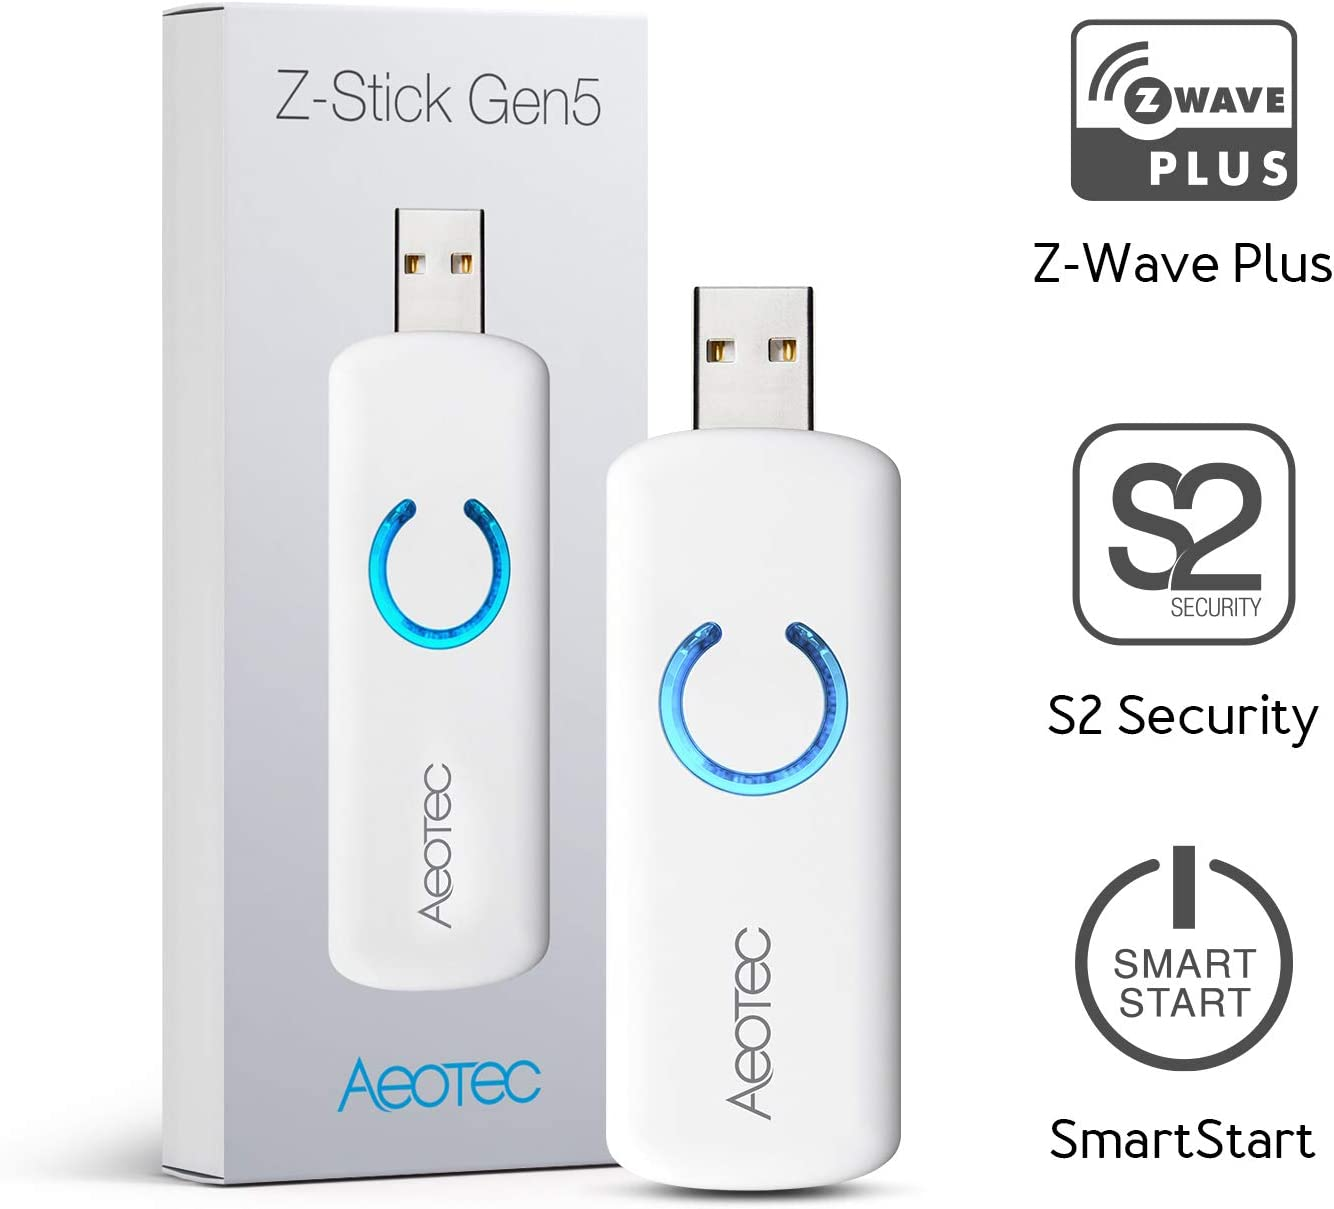 Aeotec Z-Stick Gen5 Plus, Z-wave Plus USB to Create Z-Wave Gateway, Zwave Hub Controller Pro 2020 SmartStart and S2 Enabled, Works with Raspberry Pi 4, Compatible with SmartThings, HomeSeer, White